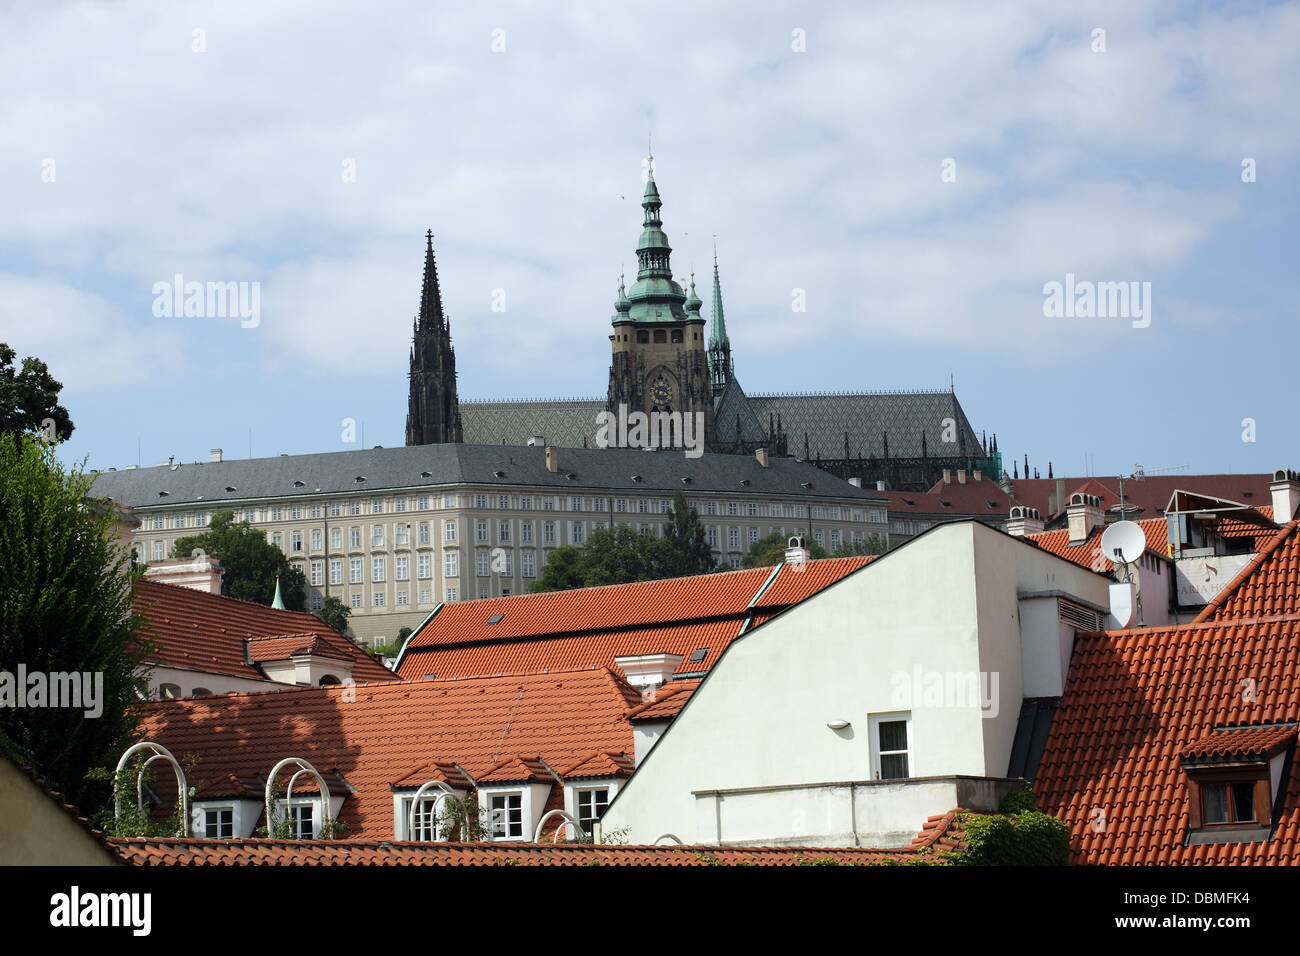 View to part of Prague Castle from Vrtbovska garden, one of the most important baroque gardens in Prague. Situated - Stock Image